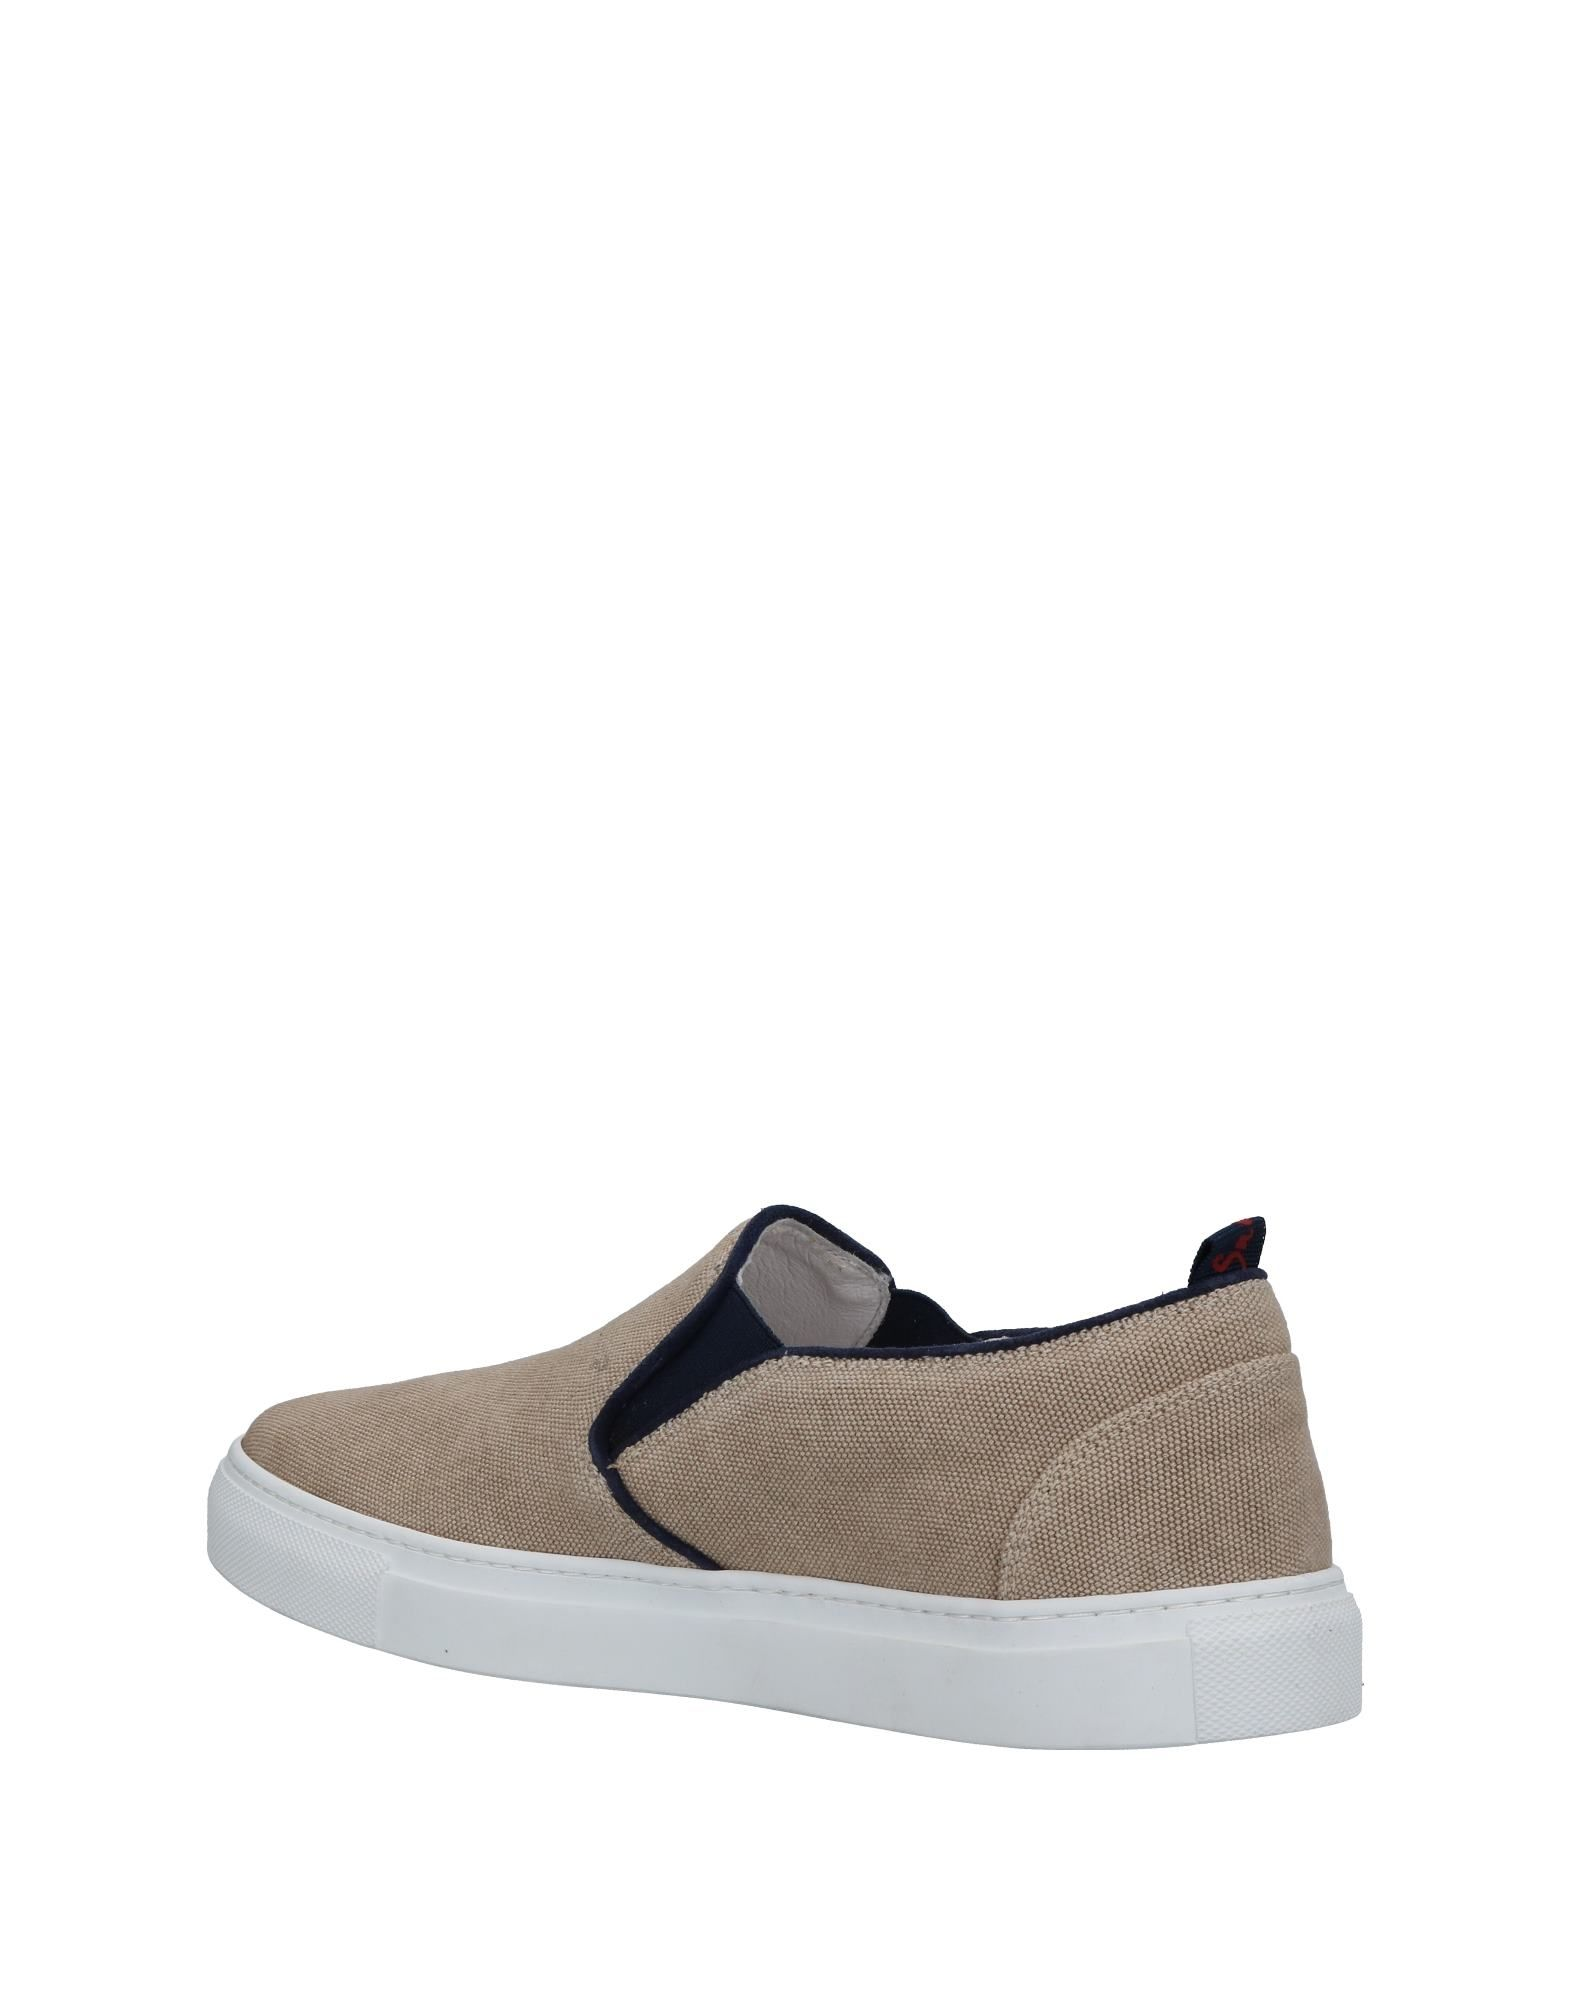 Sneakers Snobs® Homme - Sneakers Snobs® sur